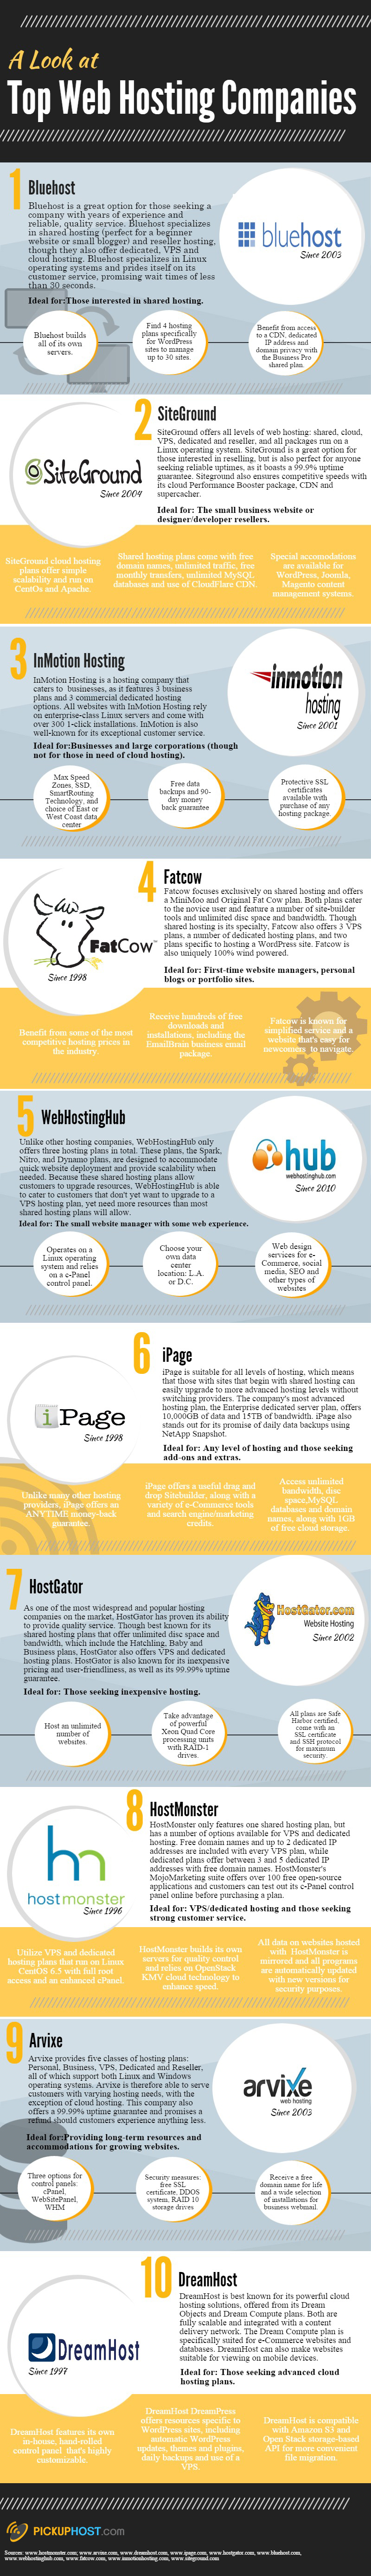 PickupHost-Infographic Top 10 Hosting Companies